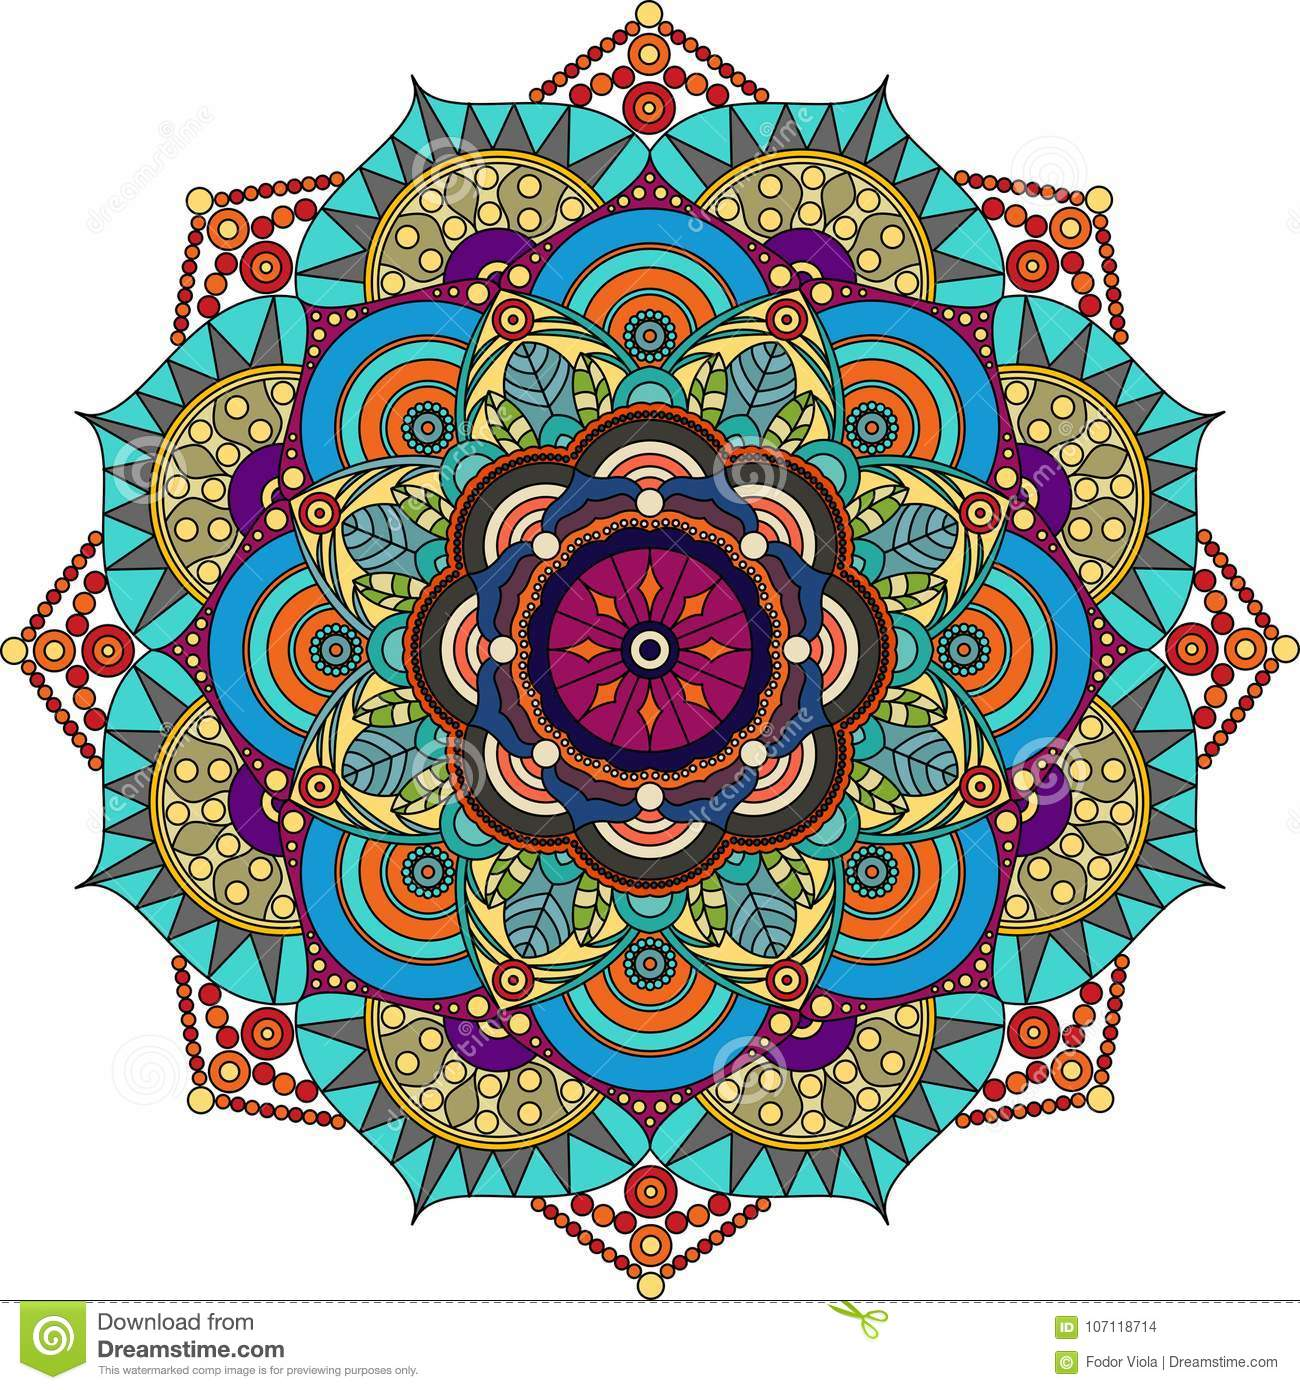 Colorful mandala, purple, green, gray, gold colors